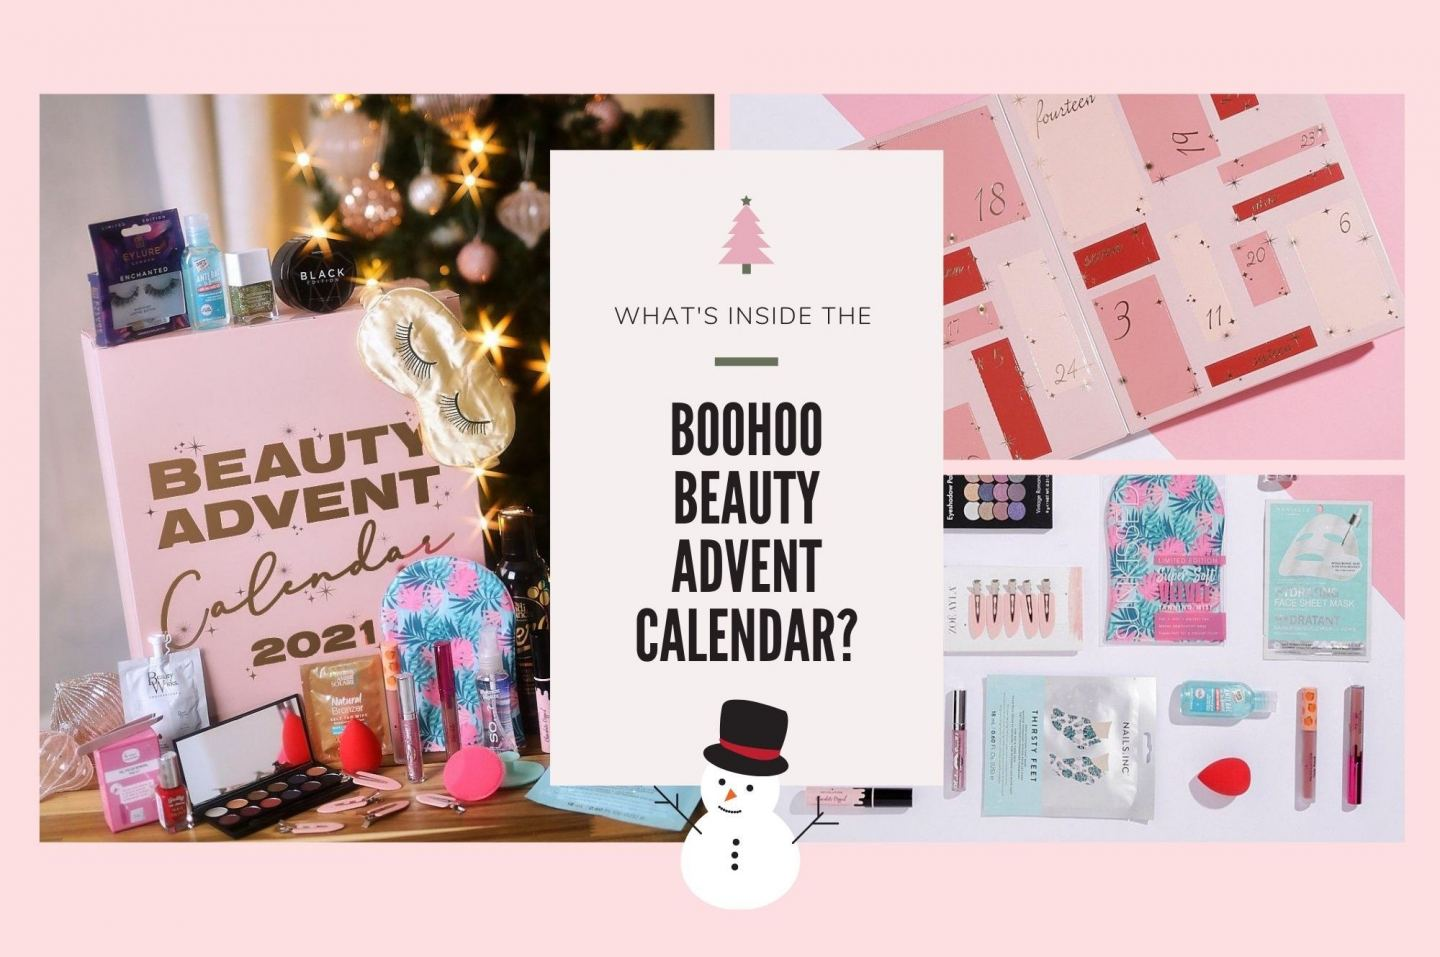 What's Inside The Boohoo Beauty Advent Calendar 2021!? review